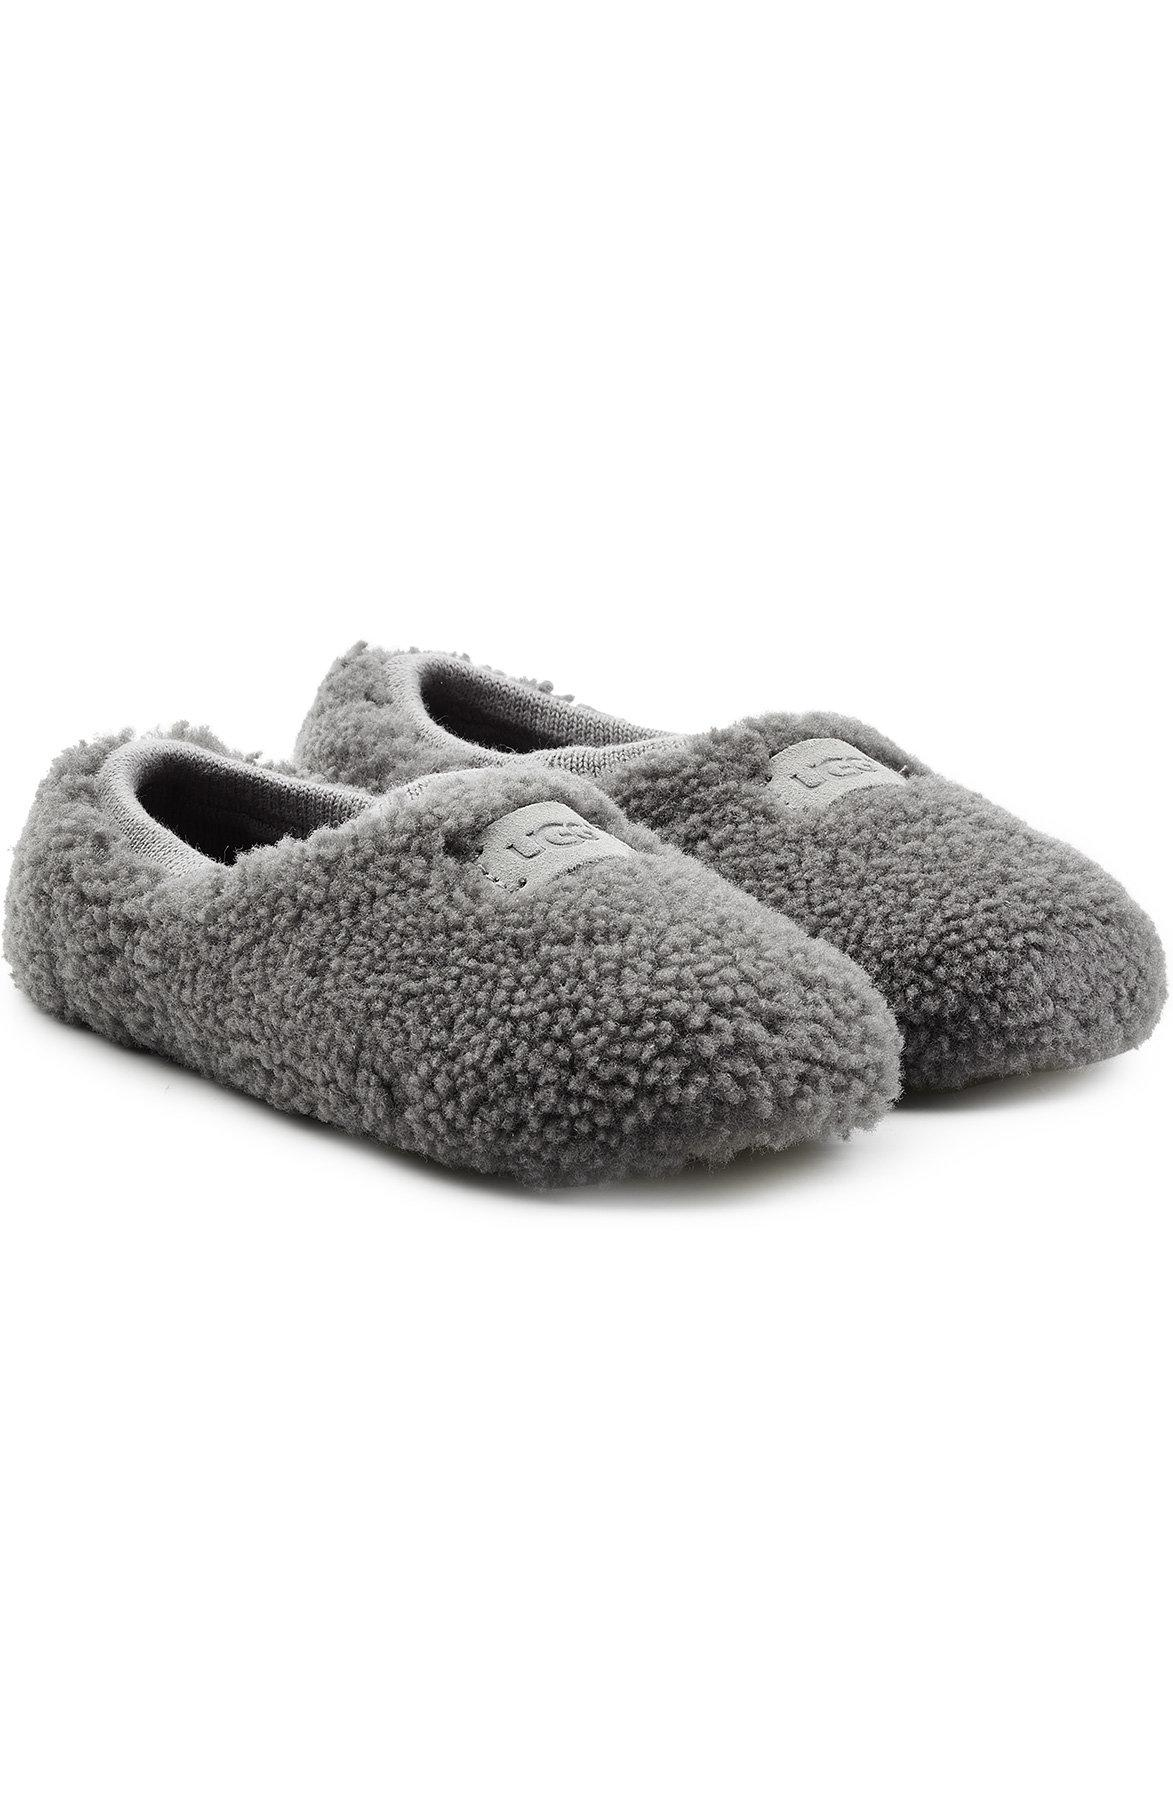 Ugg Birche Sheepskin Slippers In Grey